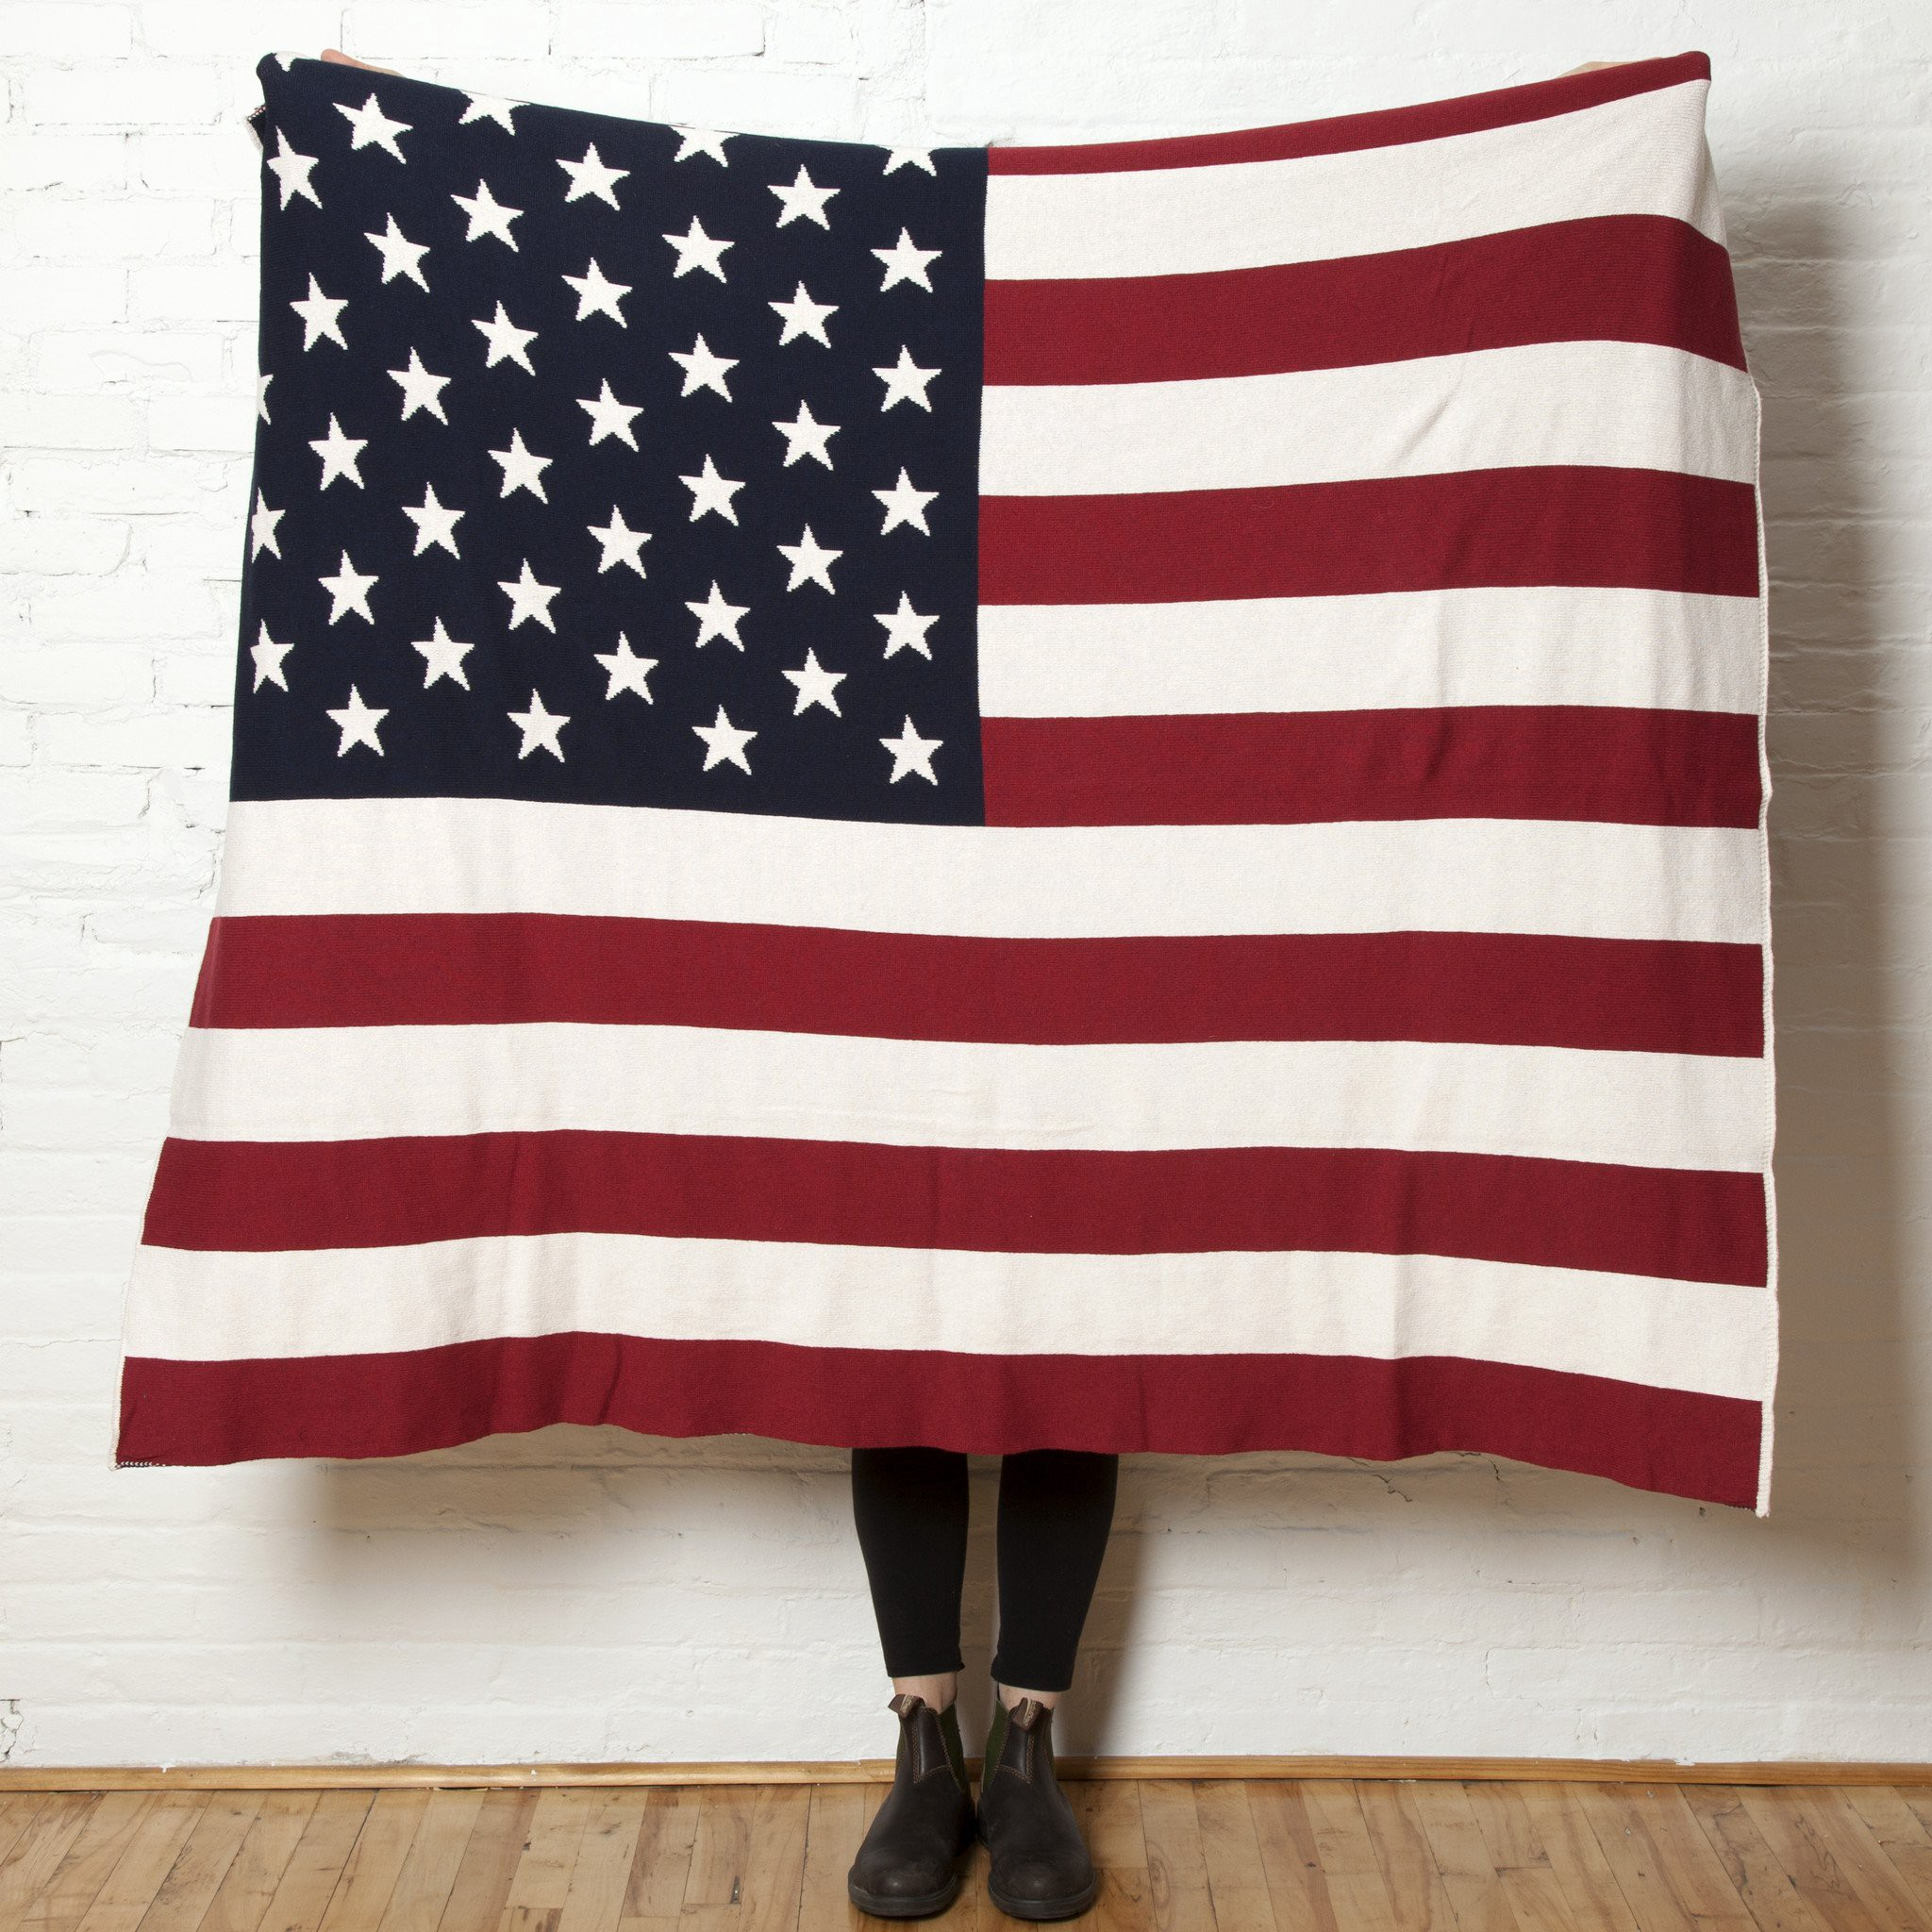 American Flag Throw - $195.00Packed with patriotic pride, this eco-conscious gift celebrates our